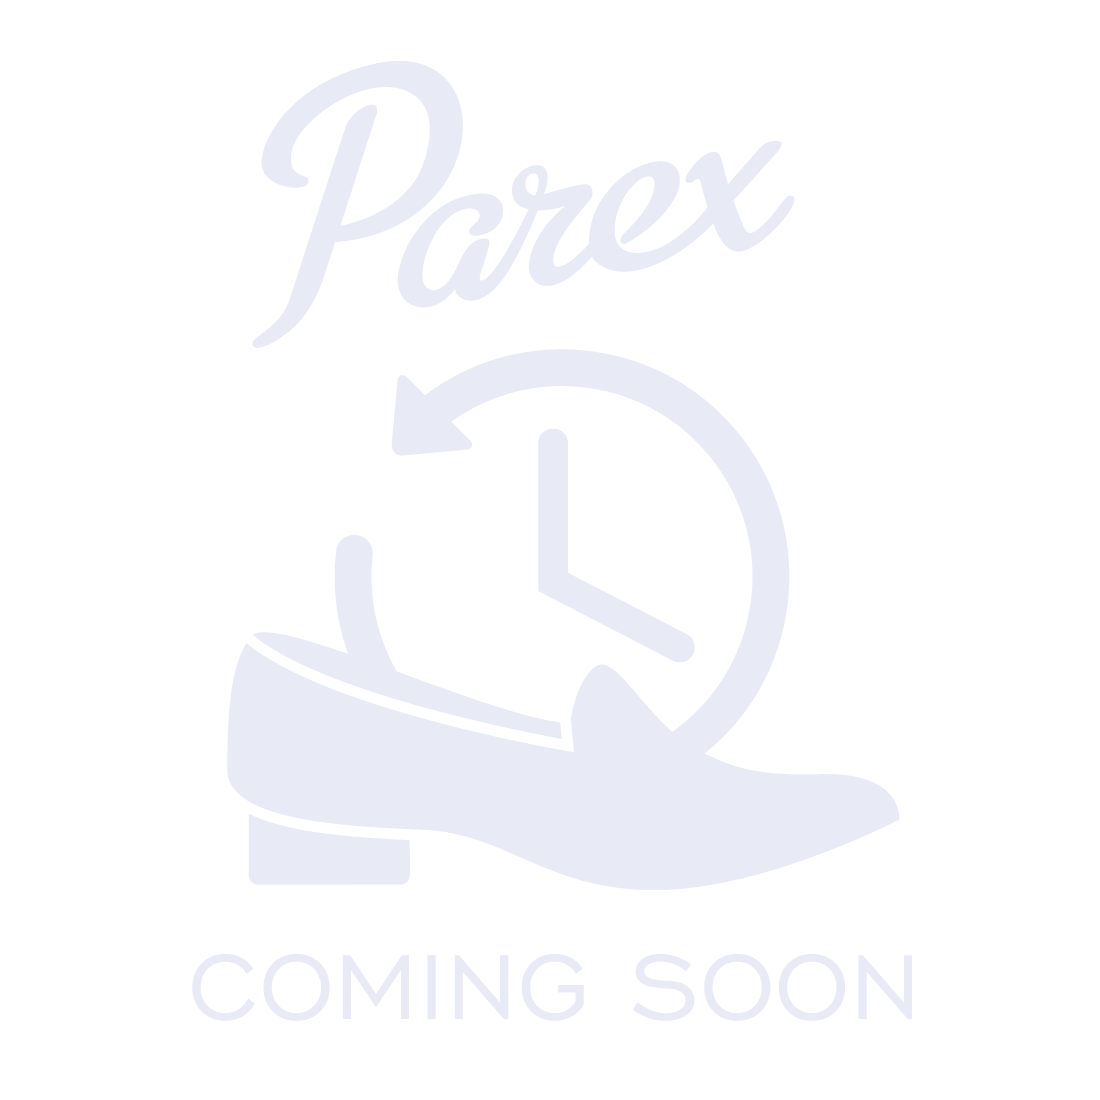 Men's Comfort Sandals Parex 12121015